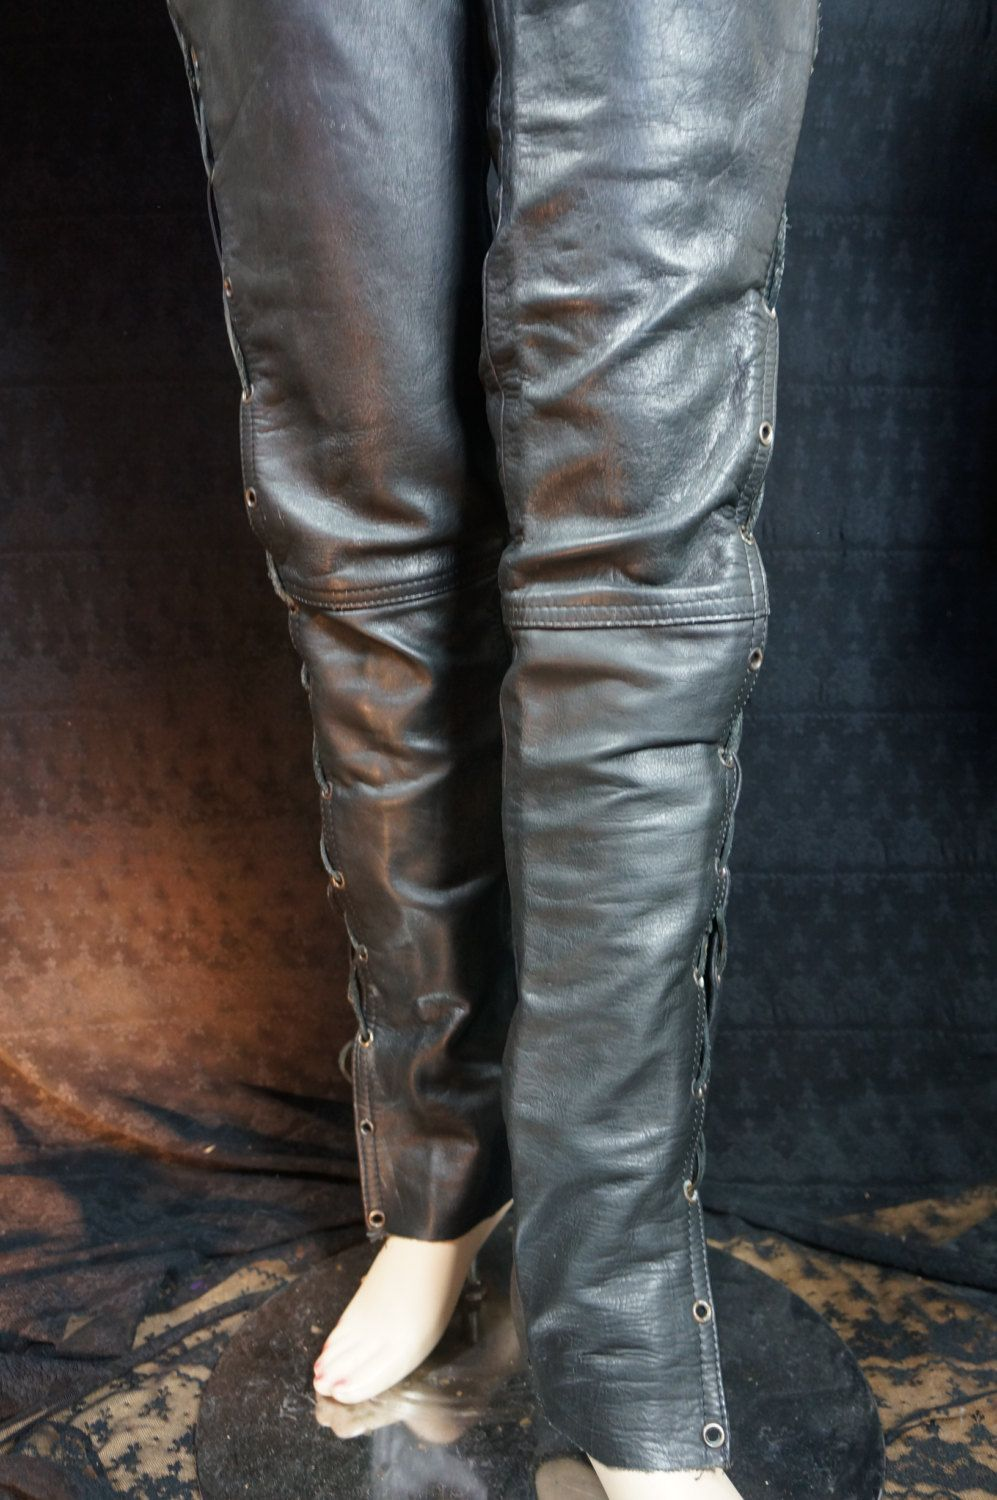 5037f9724bb58 Vintage Women's Leather Jeans SEXY, Gothic Punk Leather Lace Up Jeans, 80s  Women